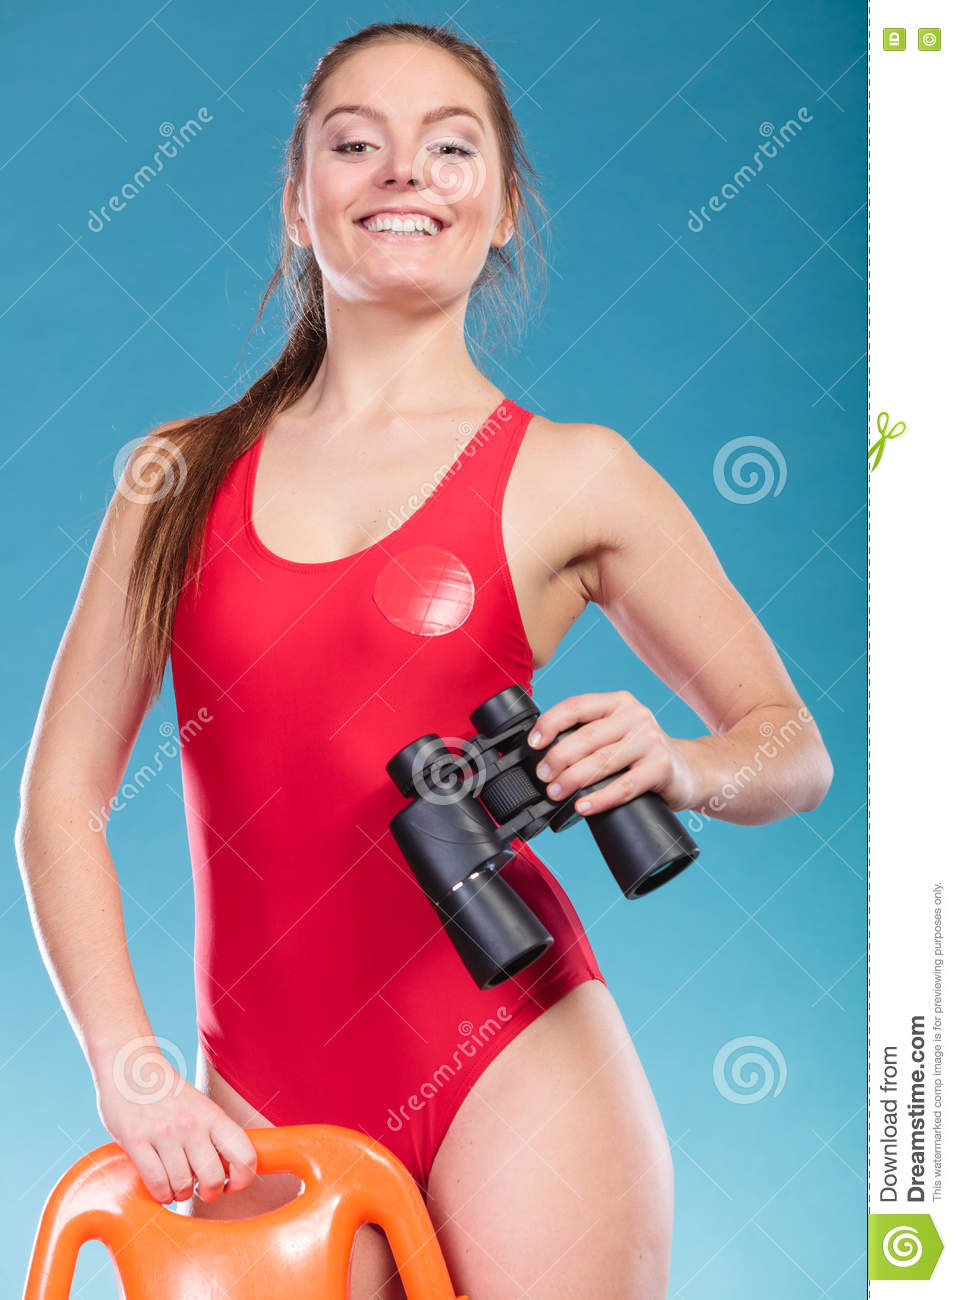 e5c6d719842e Lifeguard On Duty With Rescue Buoy Supervising. Stock Photo - Image ...